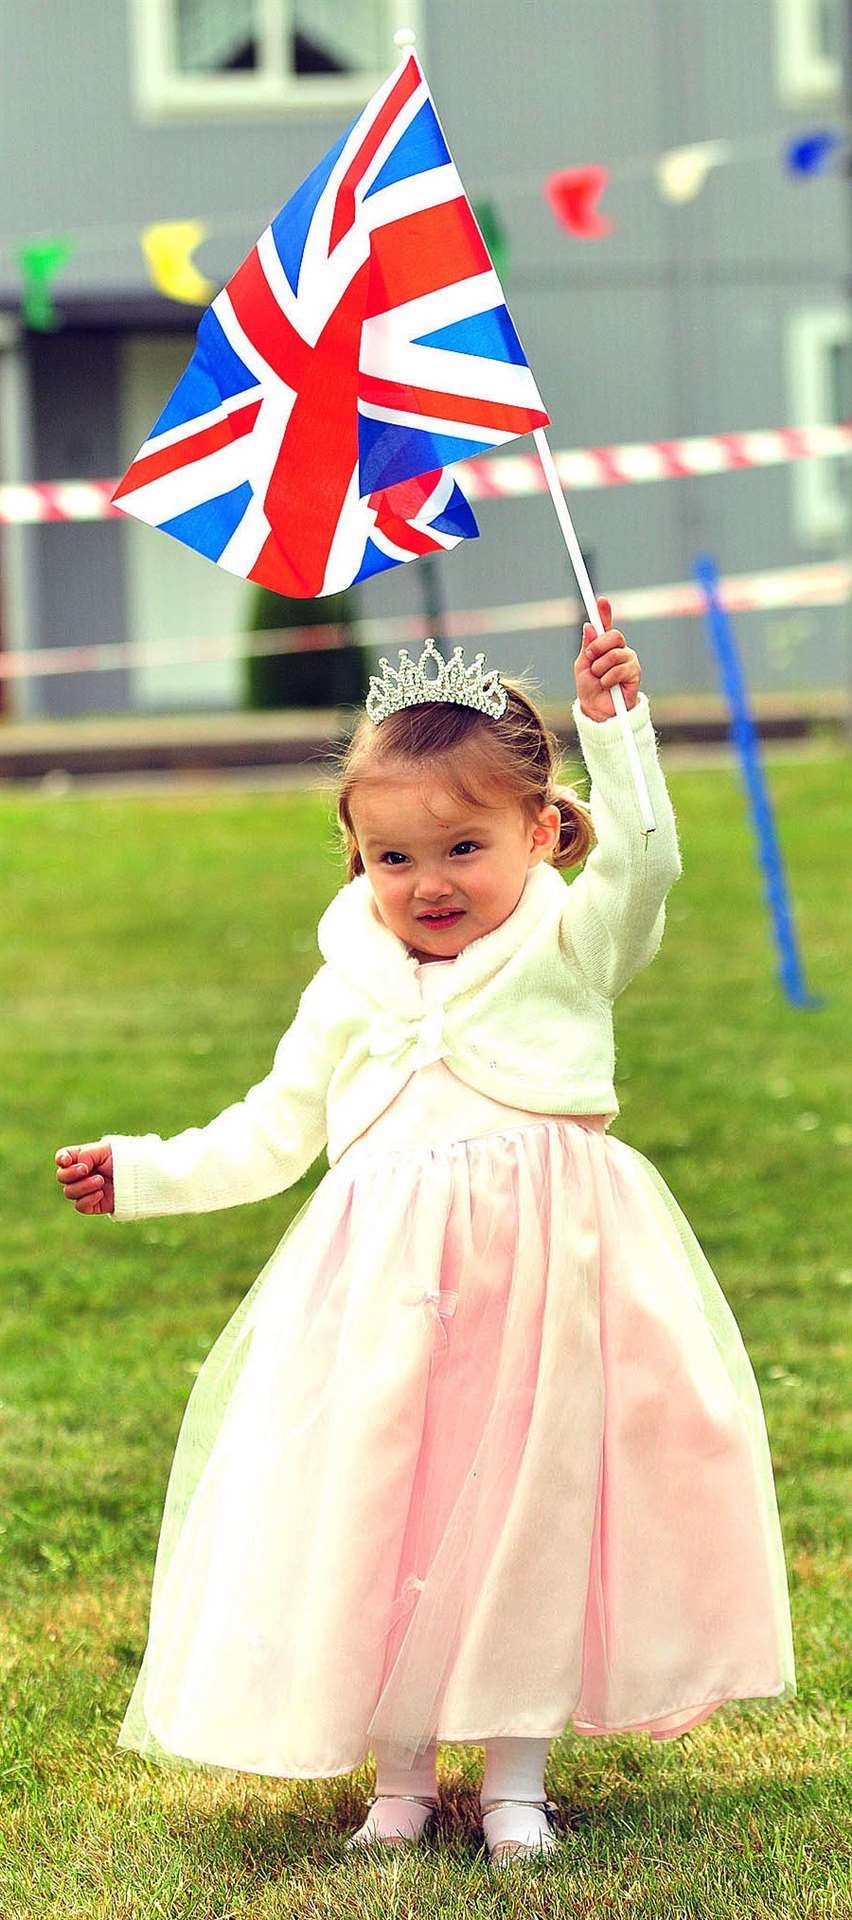 Royal Wedding party at Hickathrift House care home. Eve White (2) enters the fancy dress competition.. (46651506)